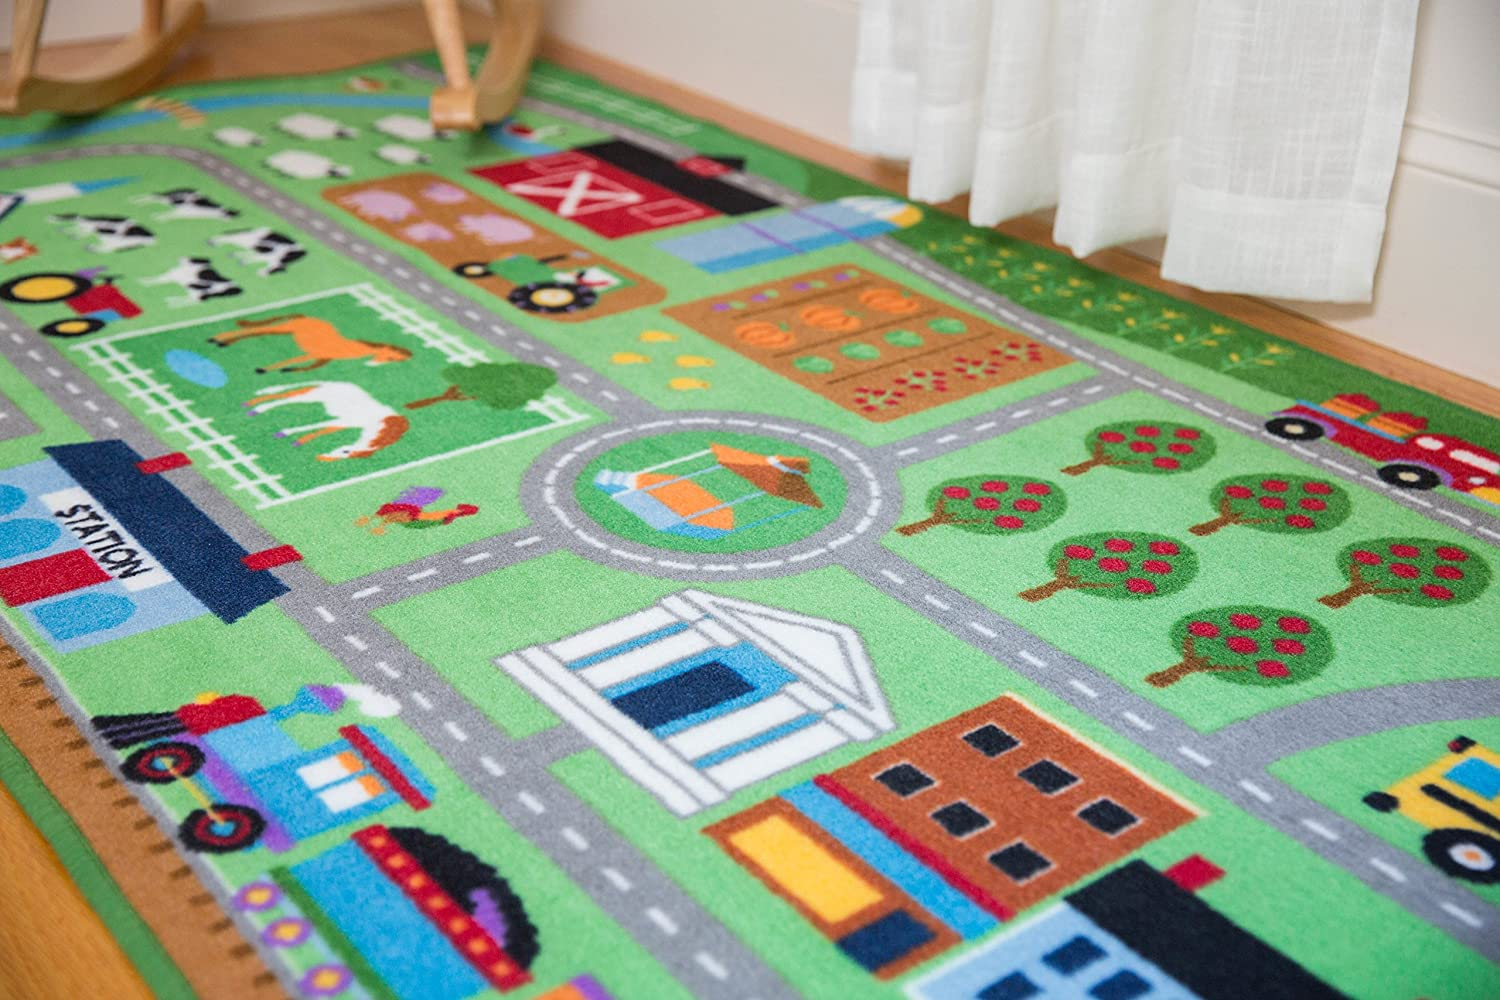 Wildkin 80x39 Inch Play Rug Vibrant Colors Features Durable Design Olive Kids Design and Skid-Proof Backing ABCs